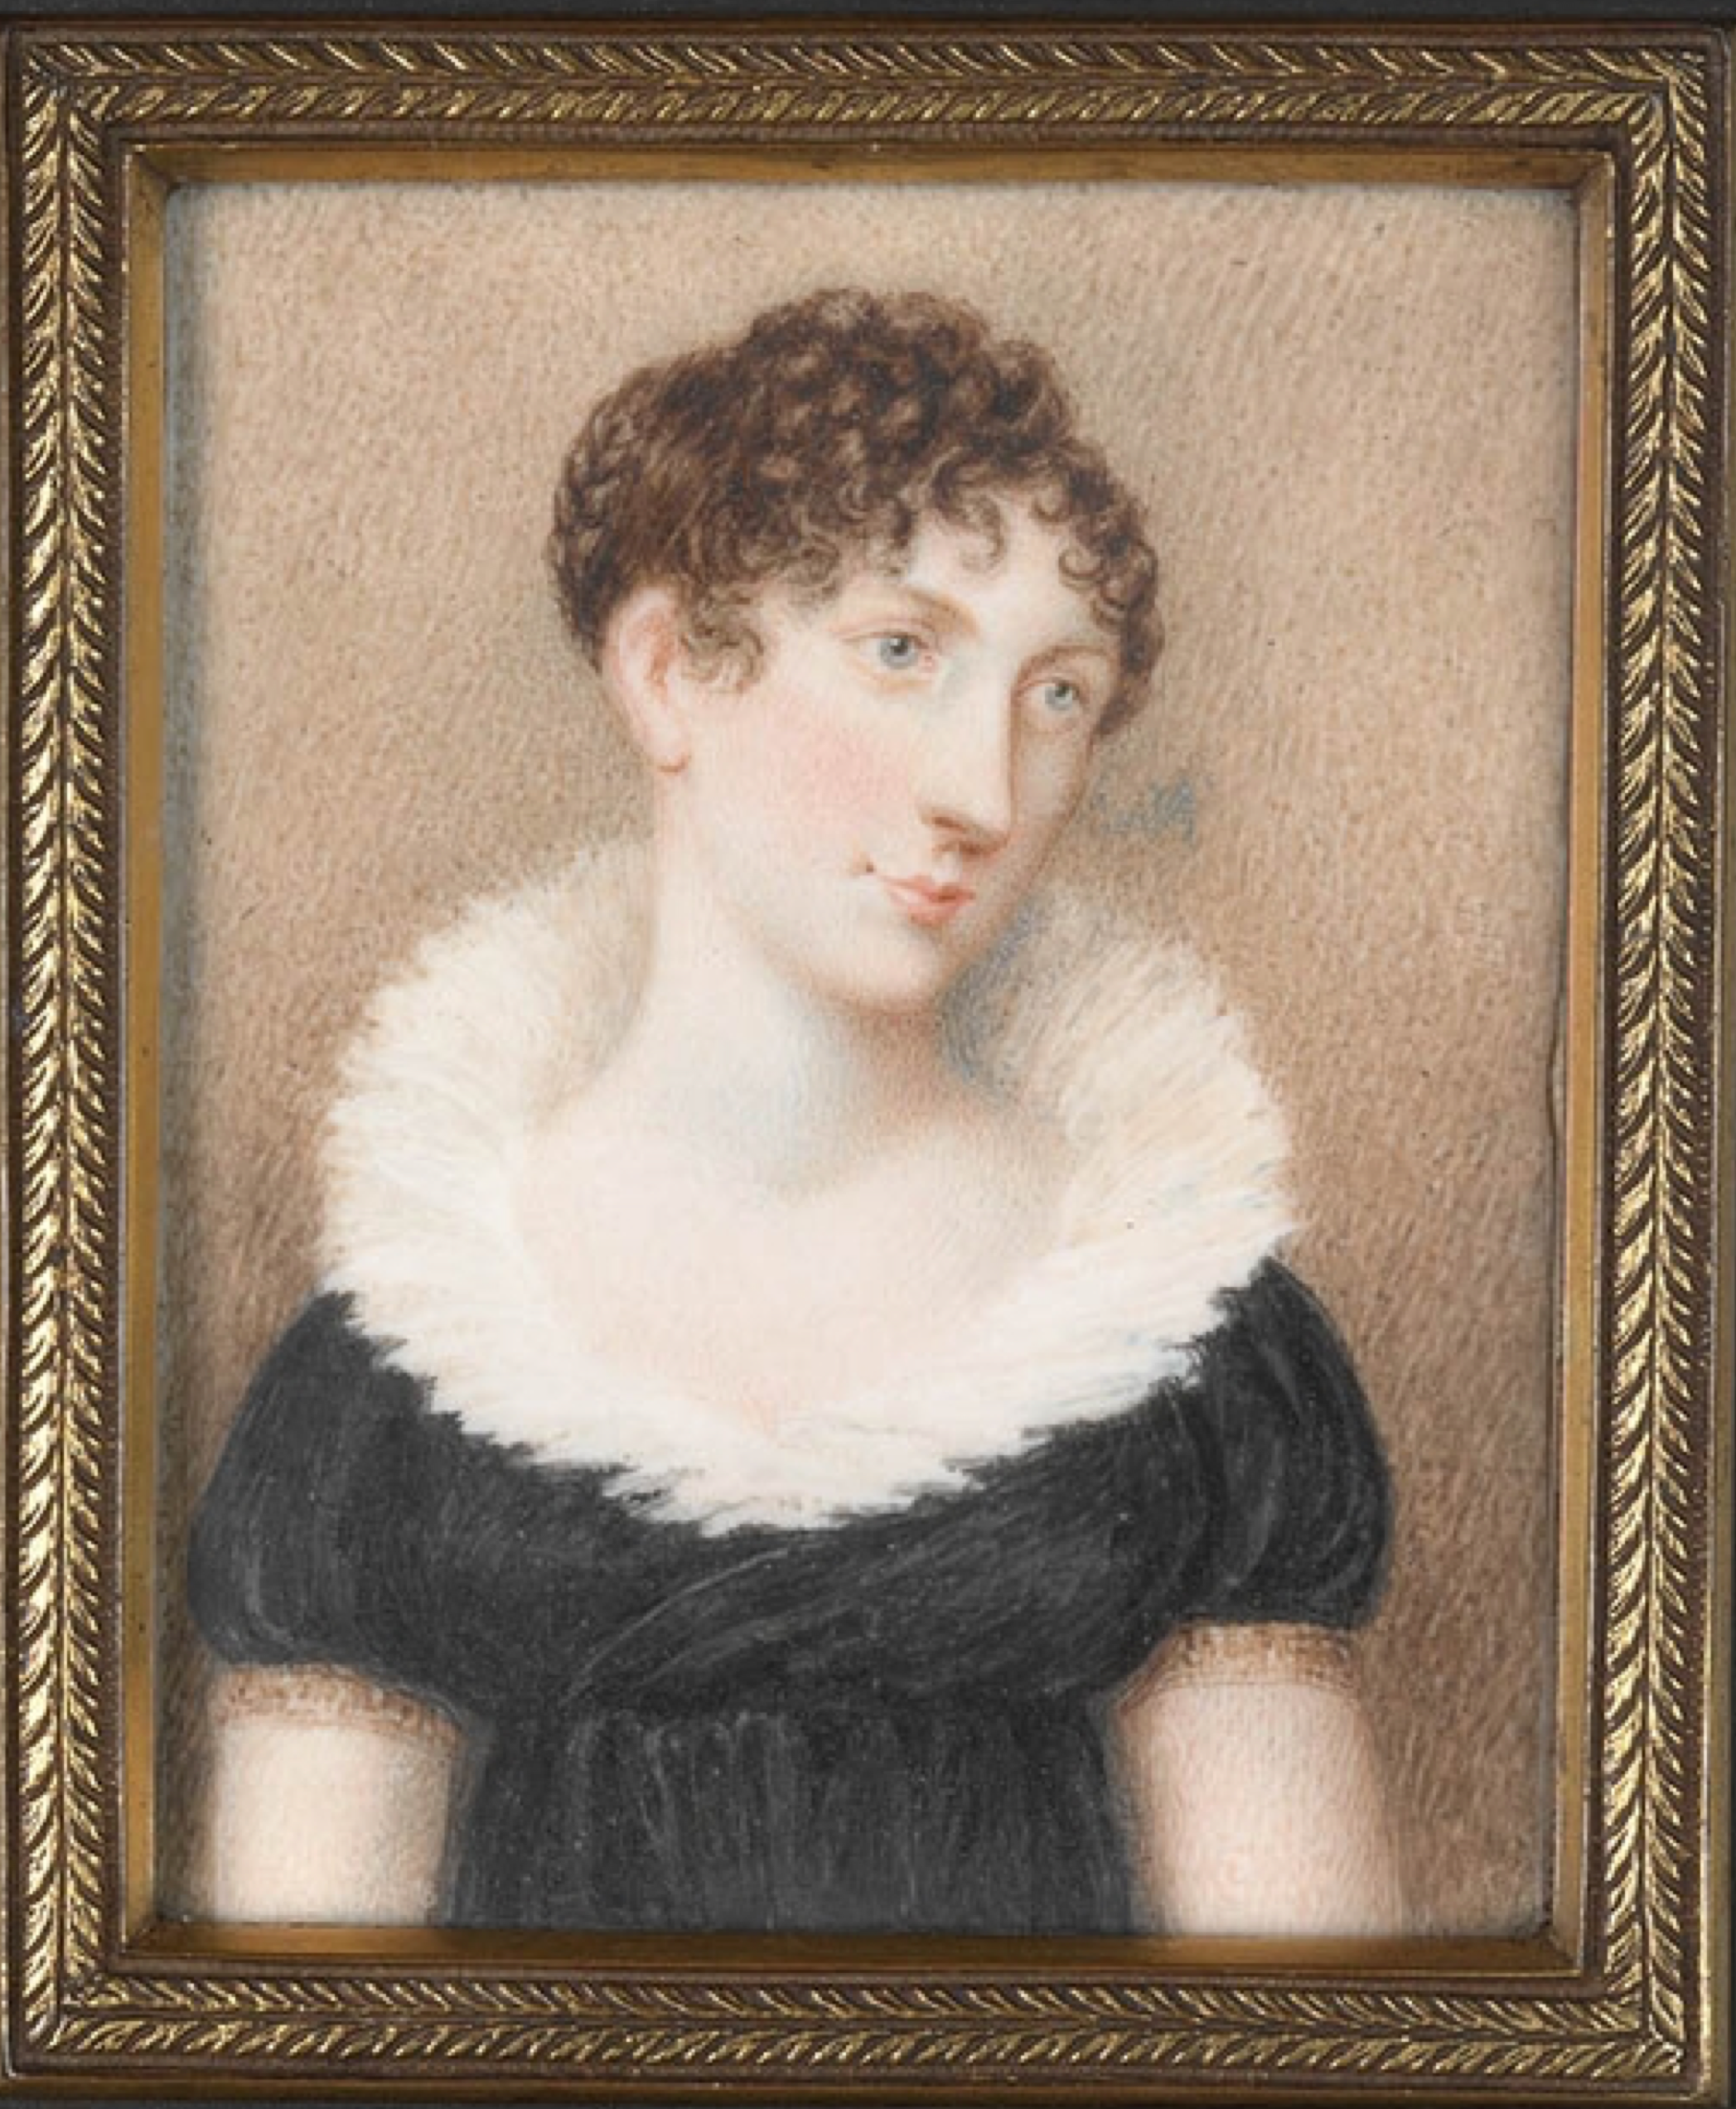 Elizabeth Macquarie, wife of Governor Lachlan Macquarie, portrait, miniature, Old Parramattans